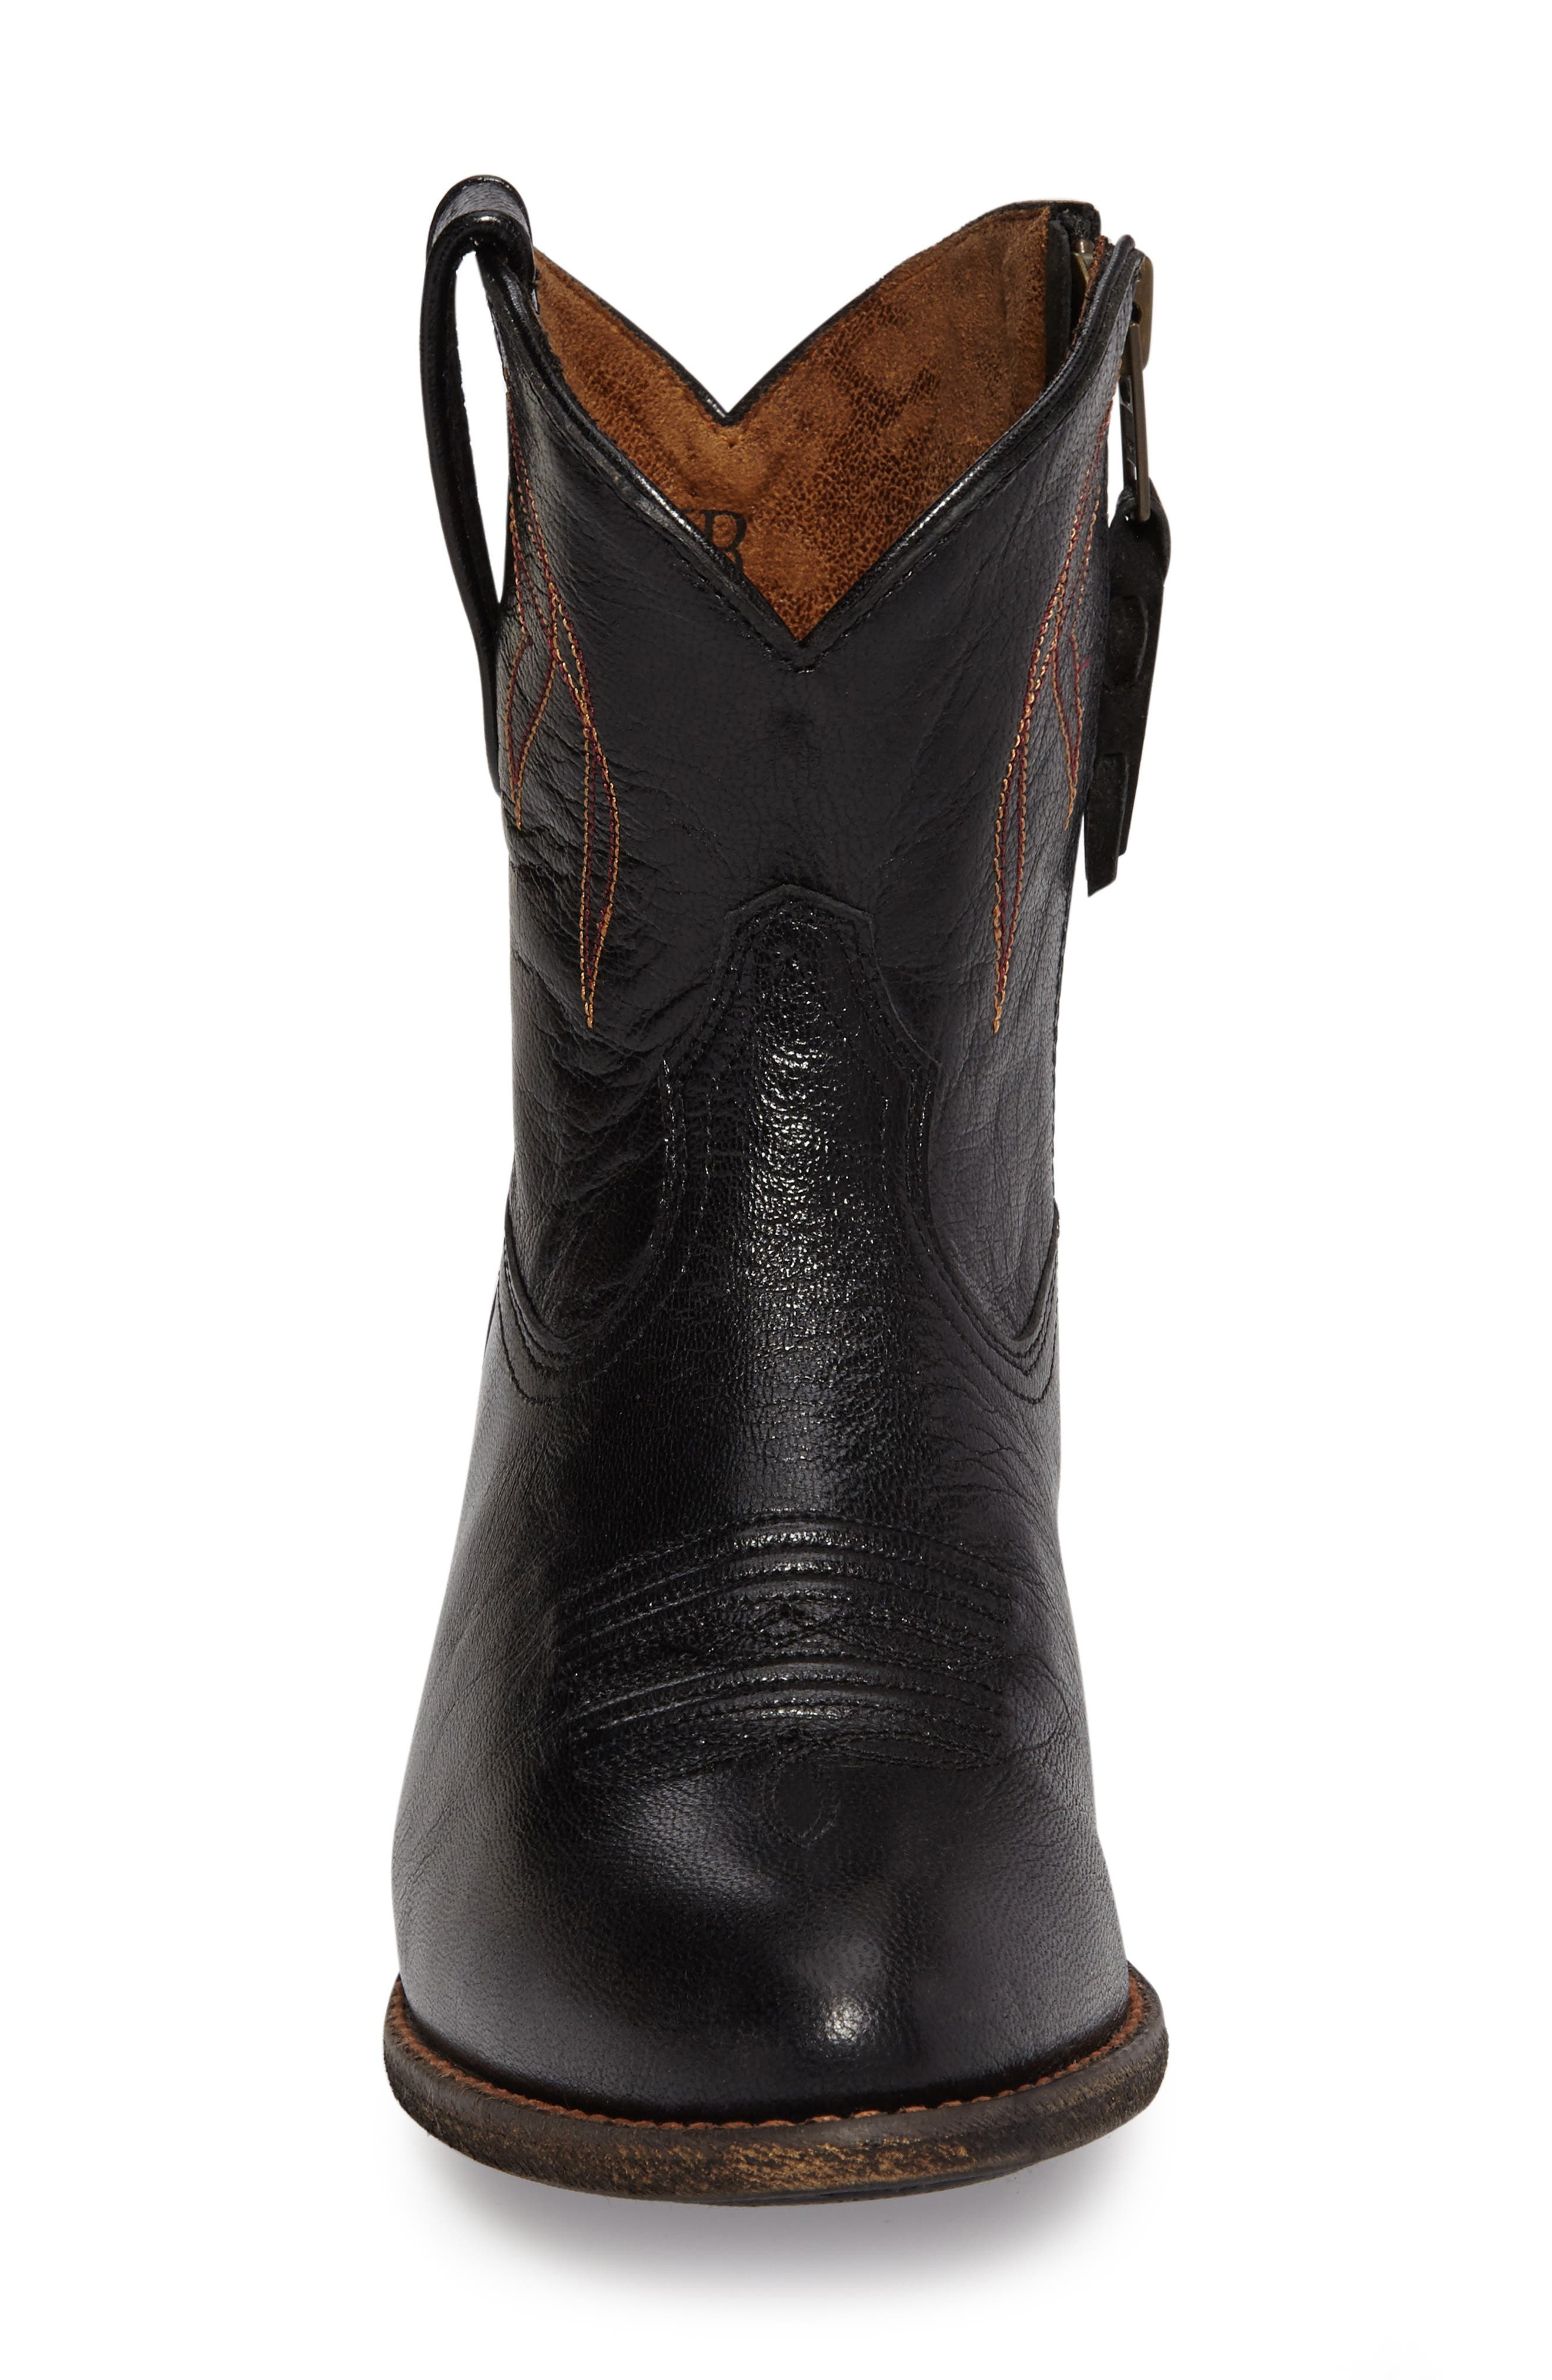 Darlin Short Western Boot,                             Alternate thumbnail 3, color,                             OLD BLACK LEATHER